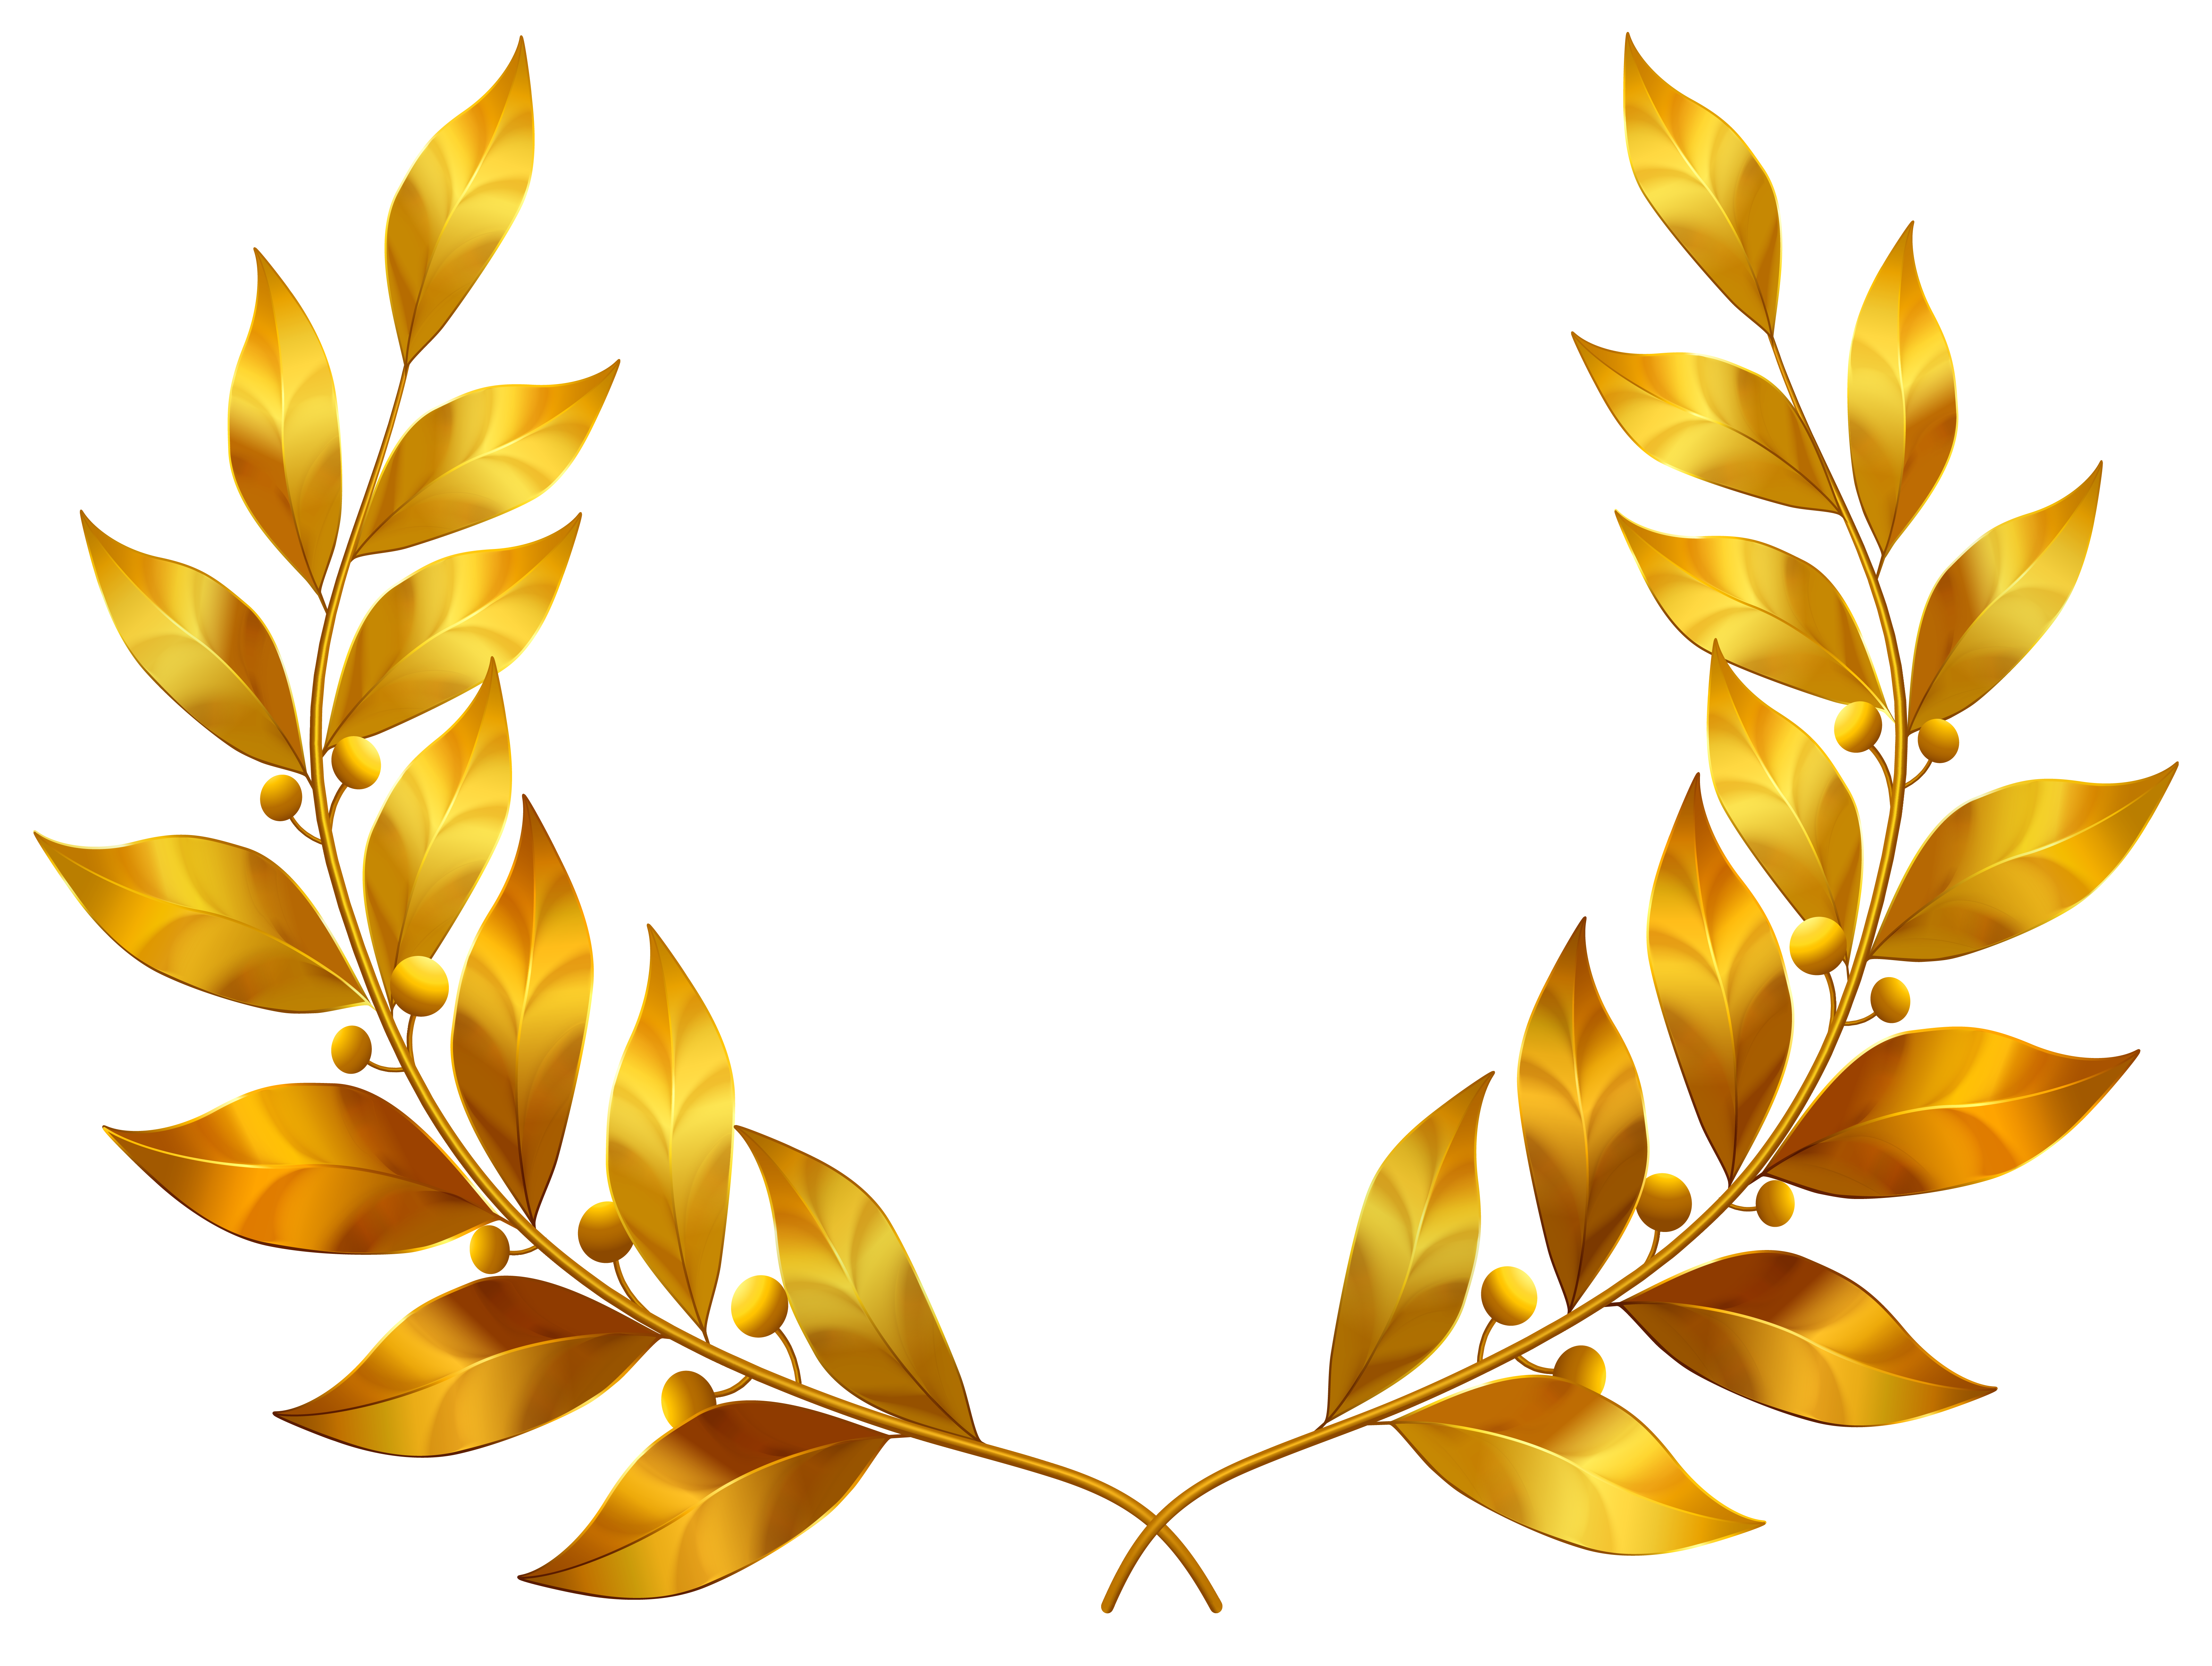 Crown made of leaves clipart png freeuse library Laurel Leaves PNG Clipart Image | Gallery Yopriceville - High ... png freeuse library